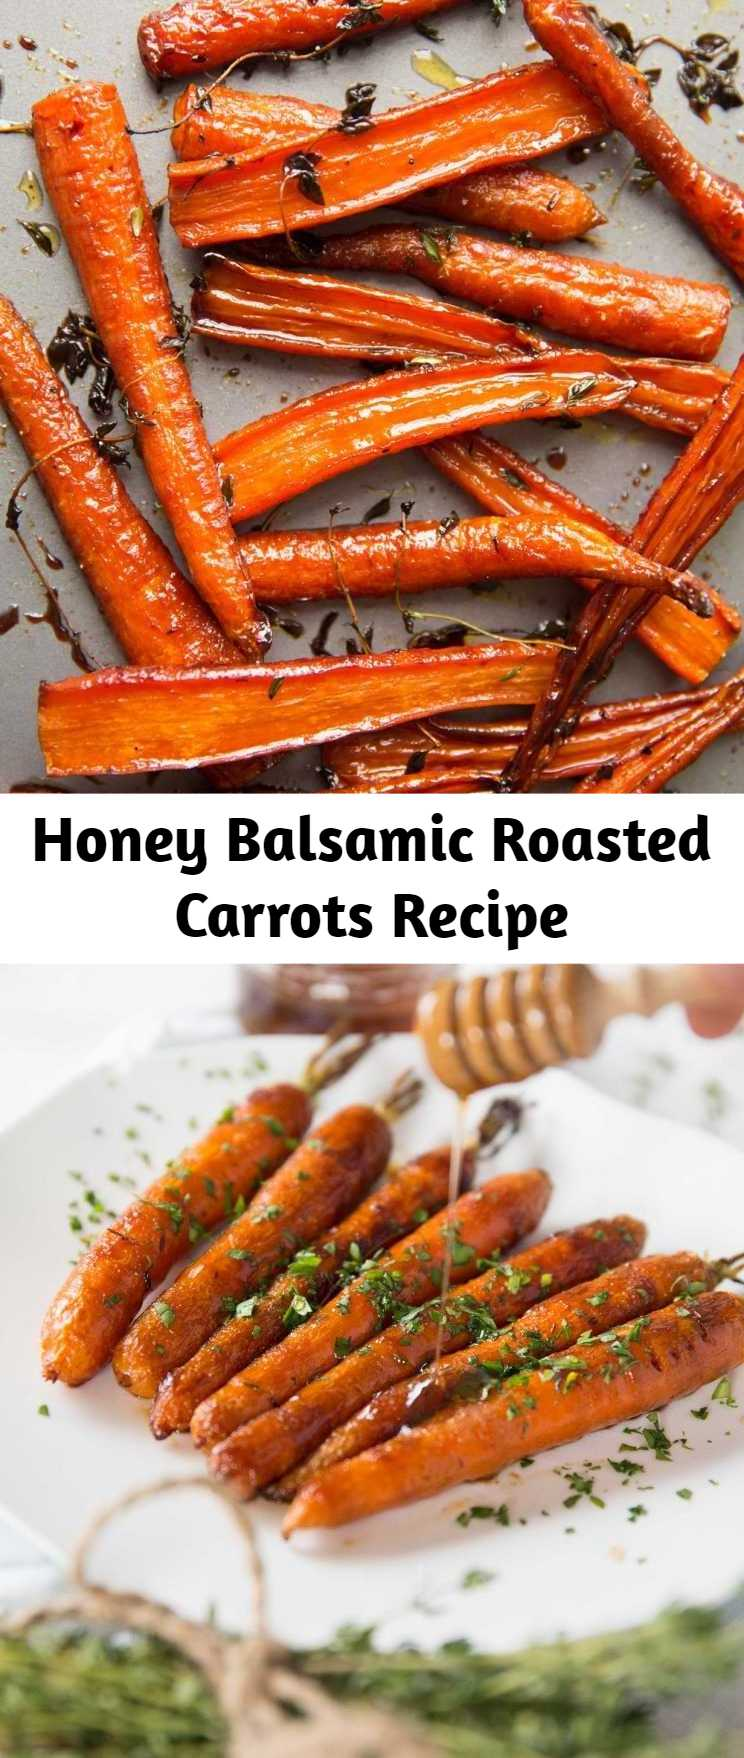 Honey Balsamic Roasted Carrots Recipe - These Honey Balsamic Roasted Carrots are beautifully caramelized in a sweet and sticky glaze. The perfect side dish for your Sunday roast!